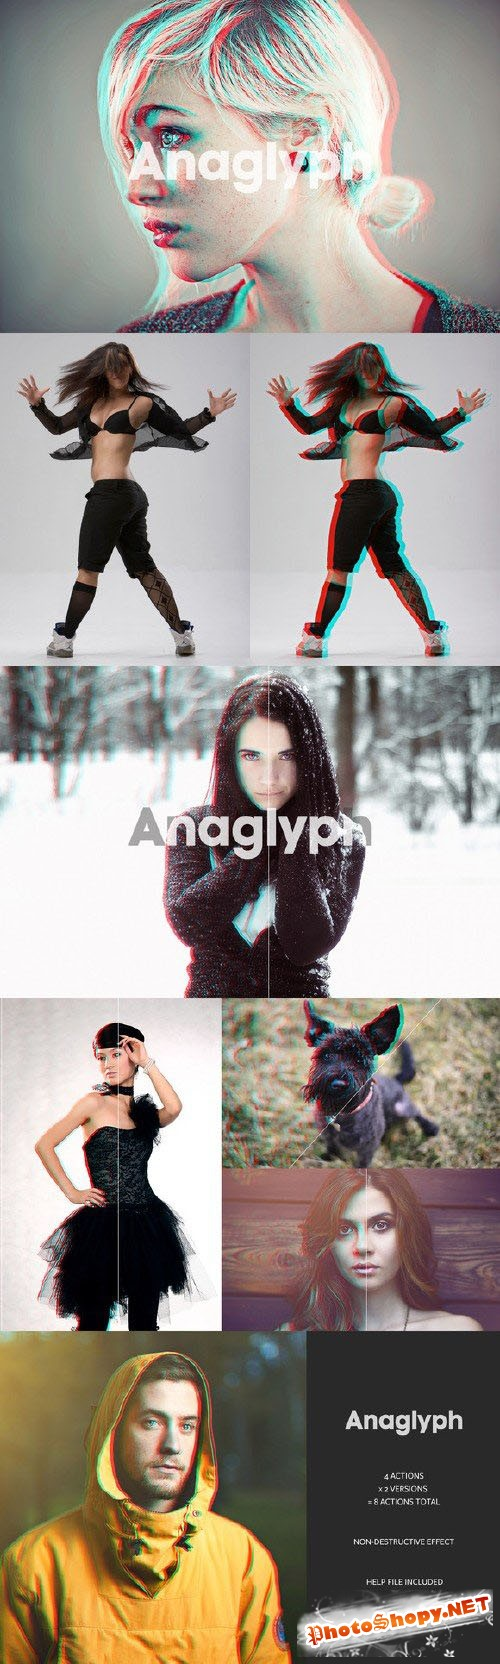 Anaglyph 3D Action - The Original - CreativeMarket